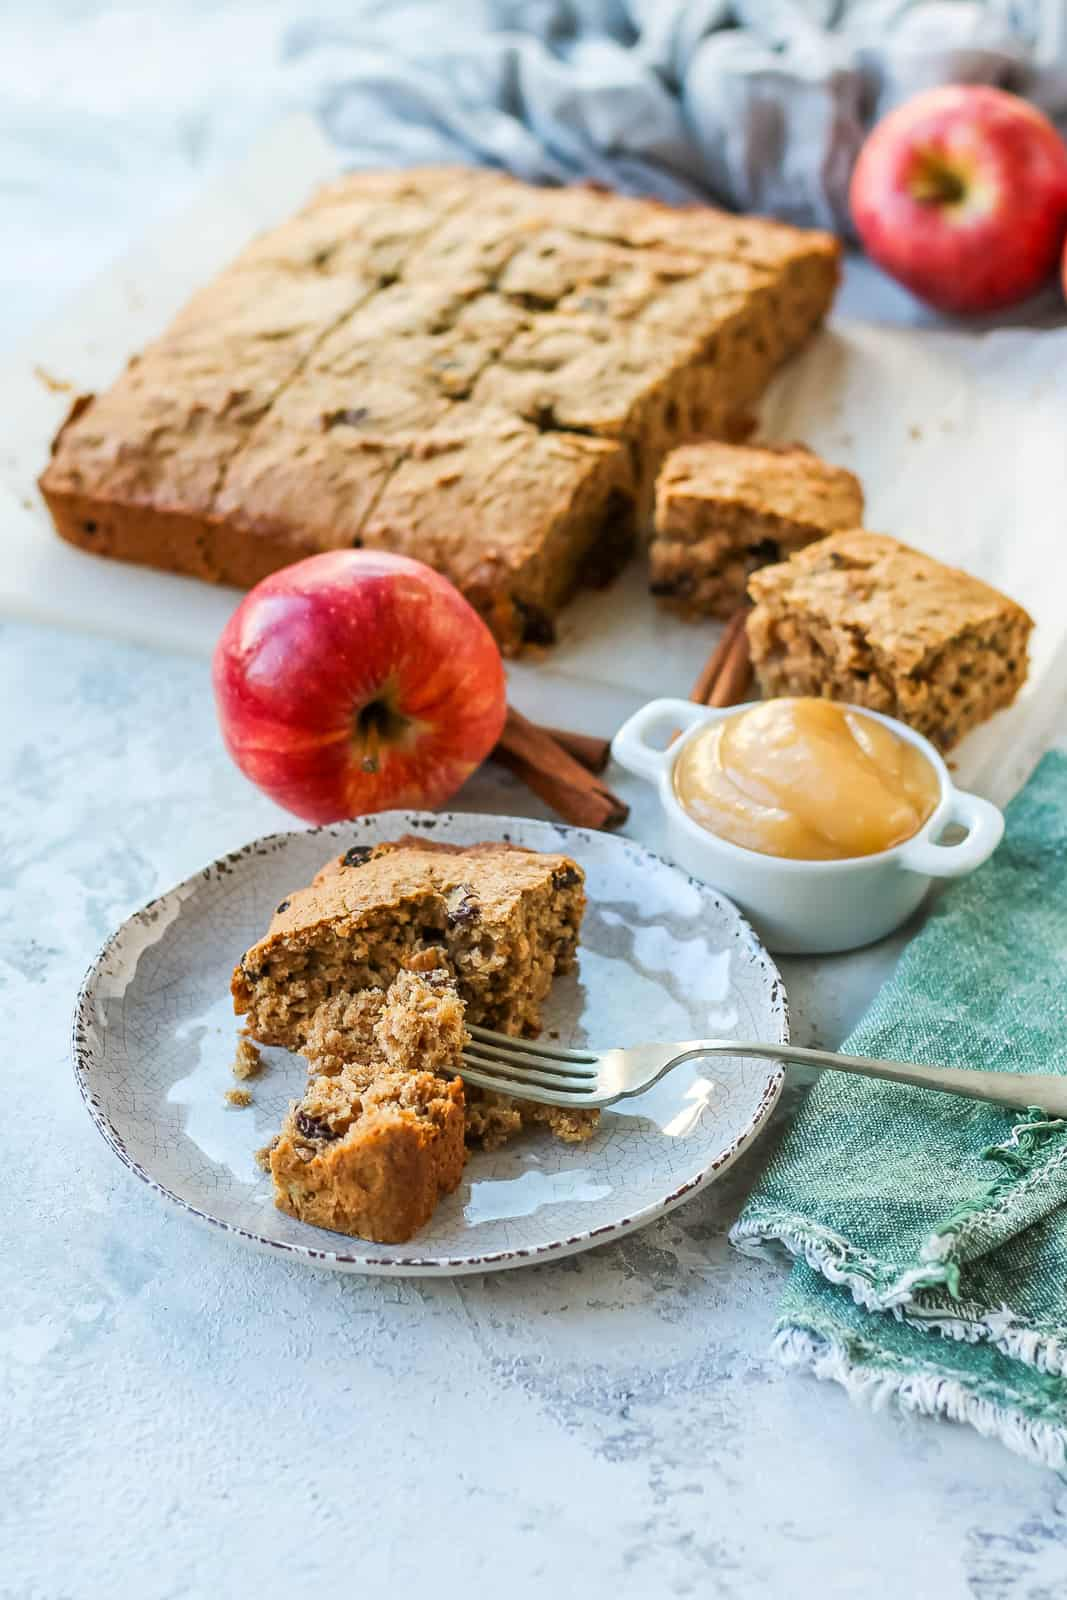 a square of healthy apple cake on a white plate with a silver fork breaking a piece off